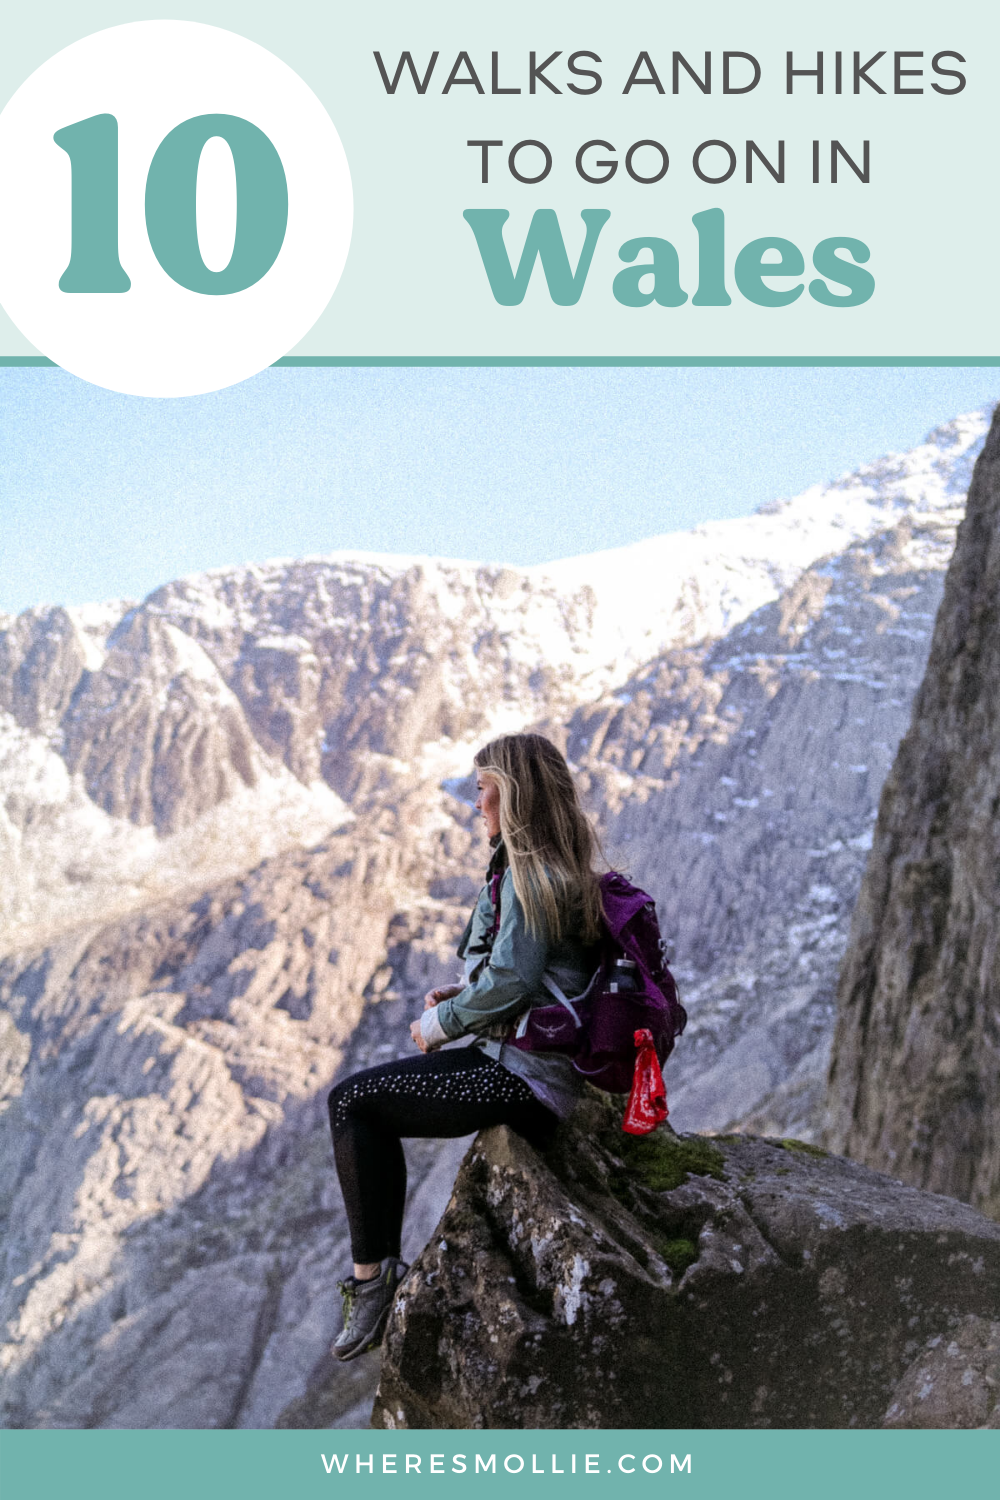 10 hikes and walks in Wales